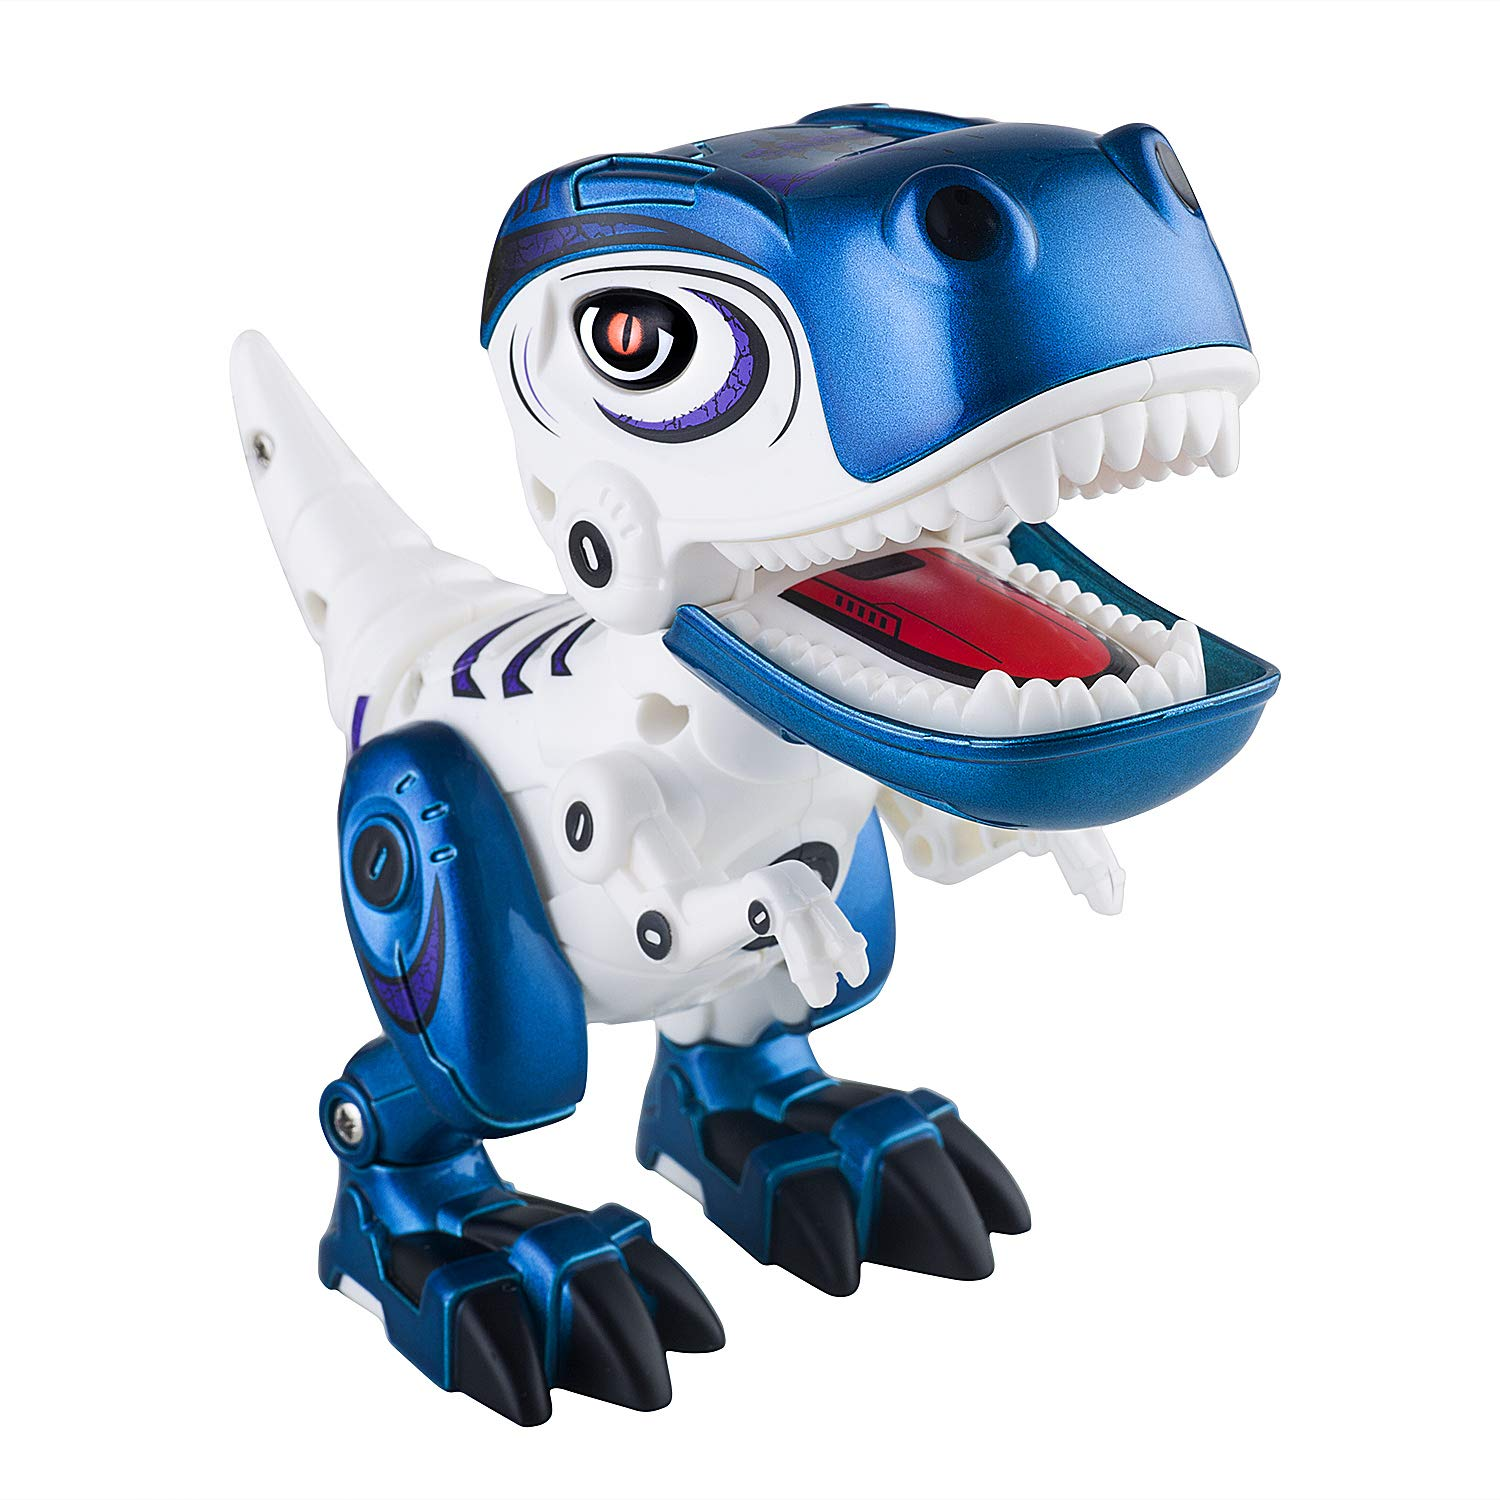 Dolibi Dinosaur Toys for 3 Year Olds Up,Mini Dino Toys Dinosaur Robot,Flexible Body,Sound & Lights (Blue) by Dolibi (Image #3)